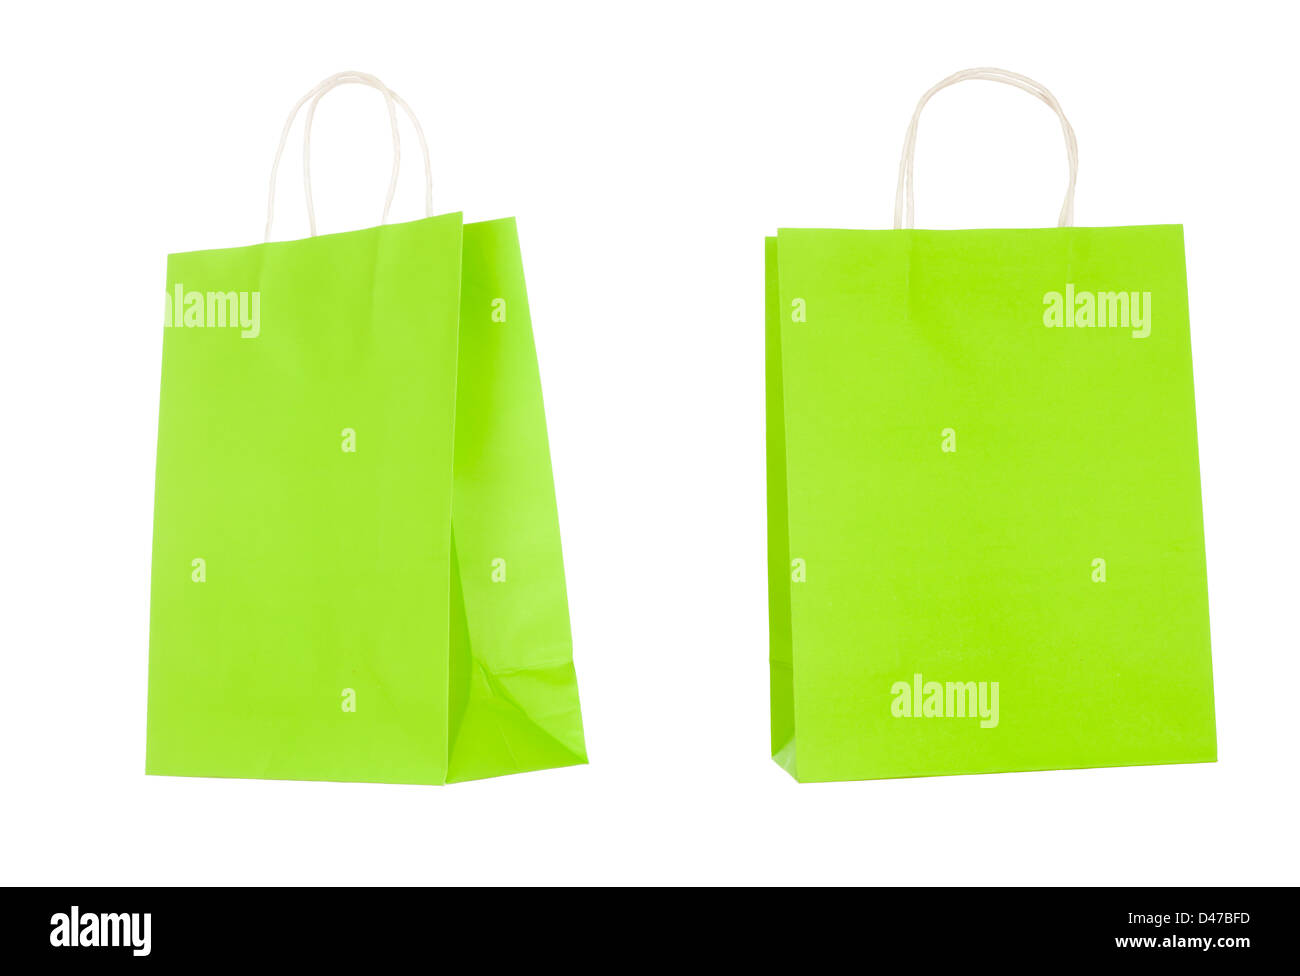 Recyclable paper bags isolated on white background - Stock Image